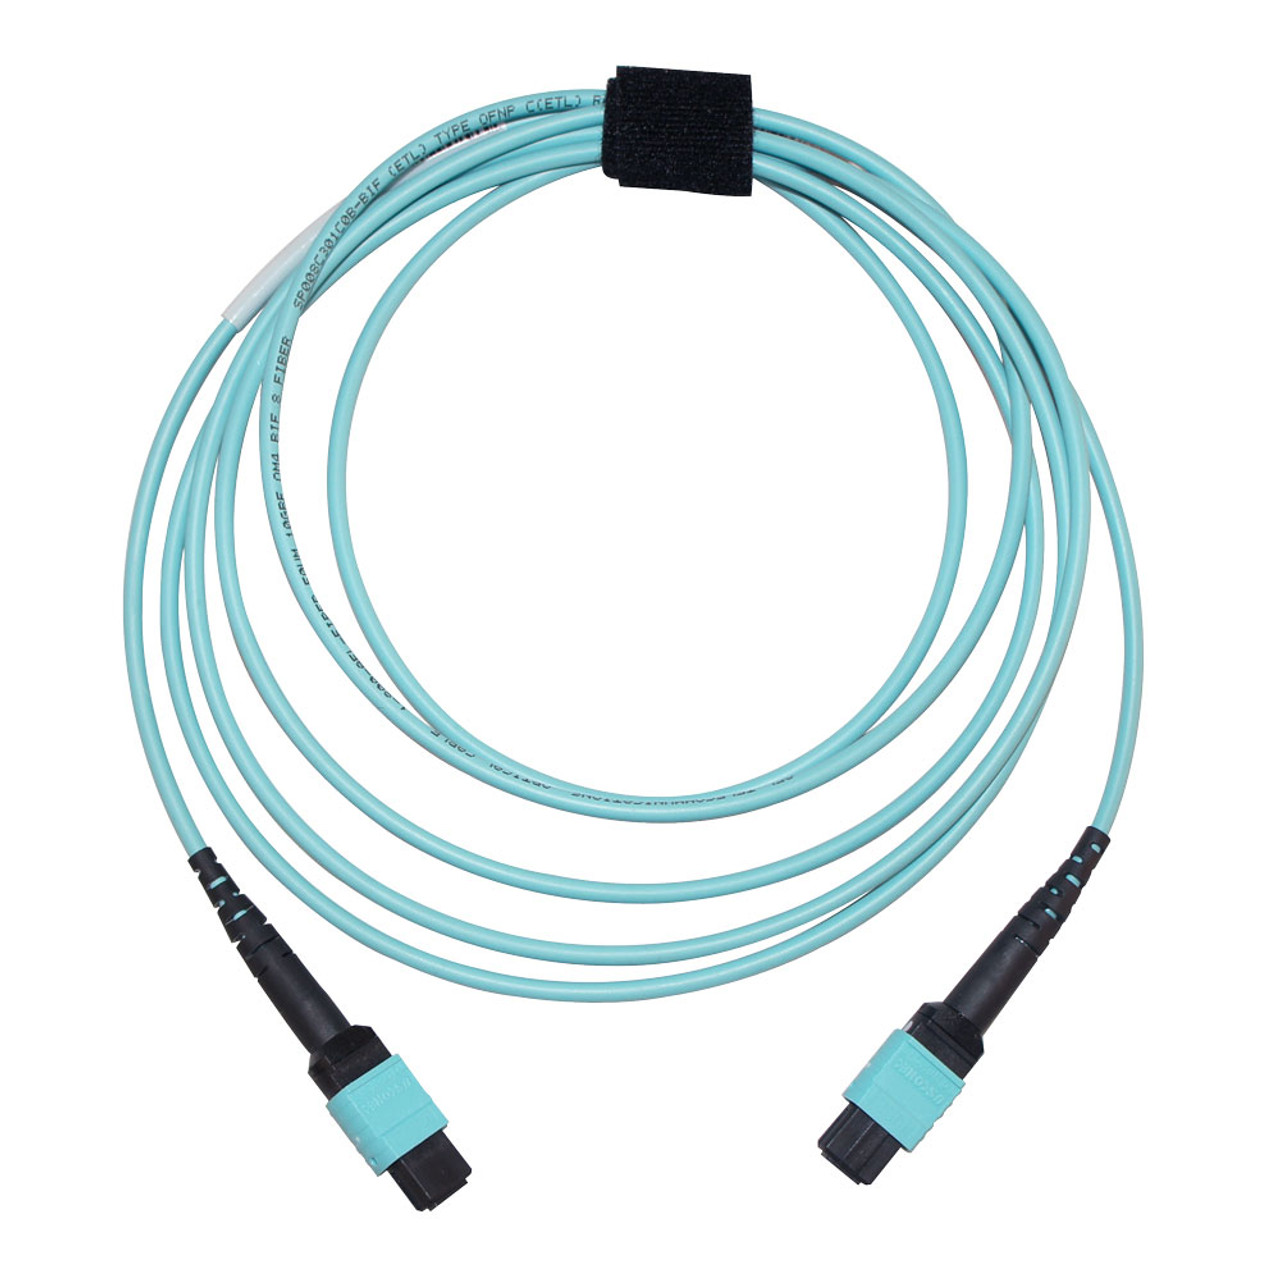 3.28 ft Fiber Optic Network Cable MTP Ma Fiber Optic for Network Device